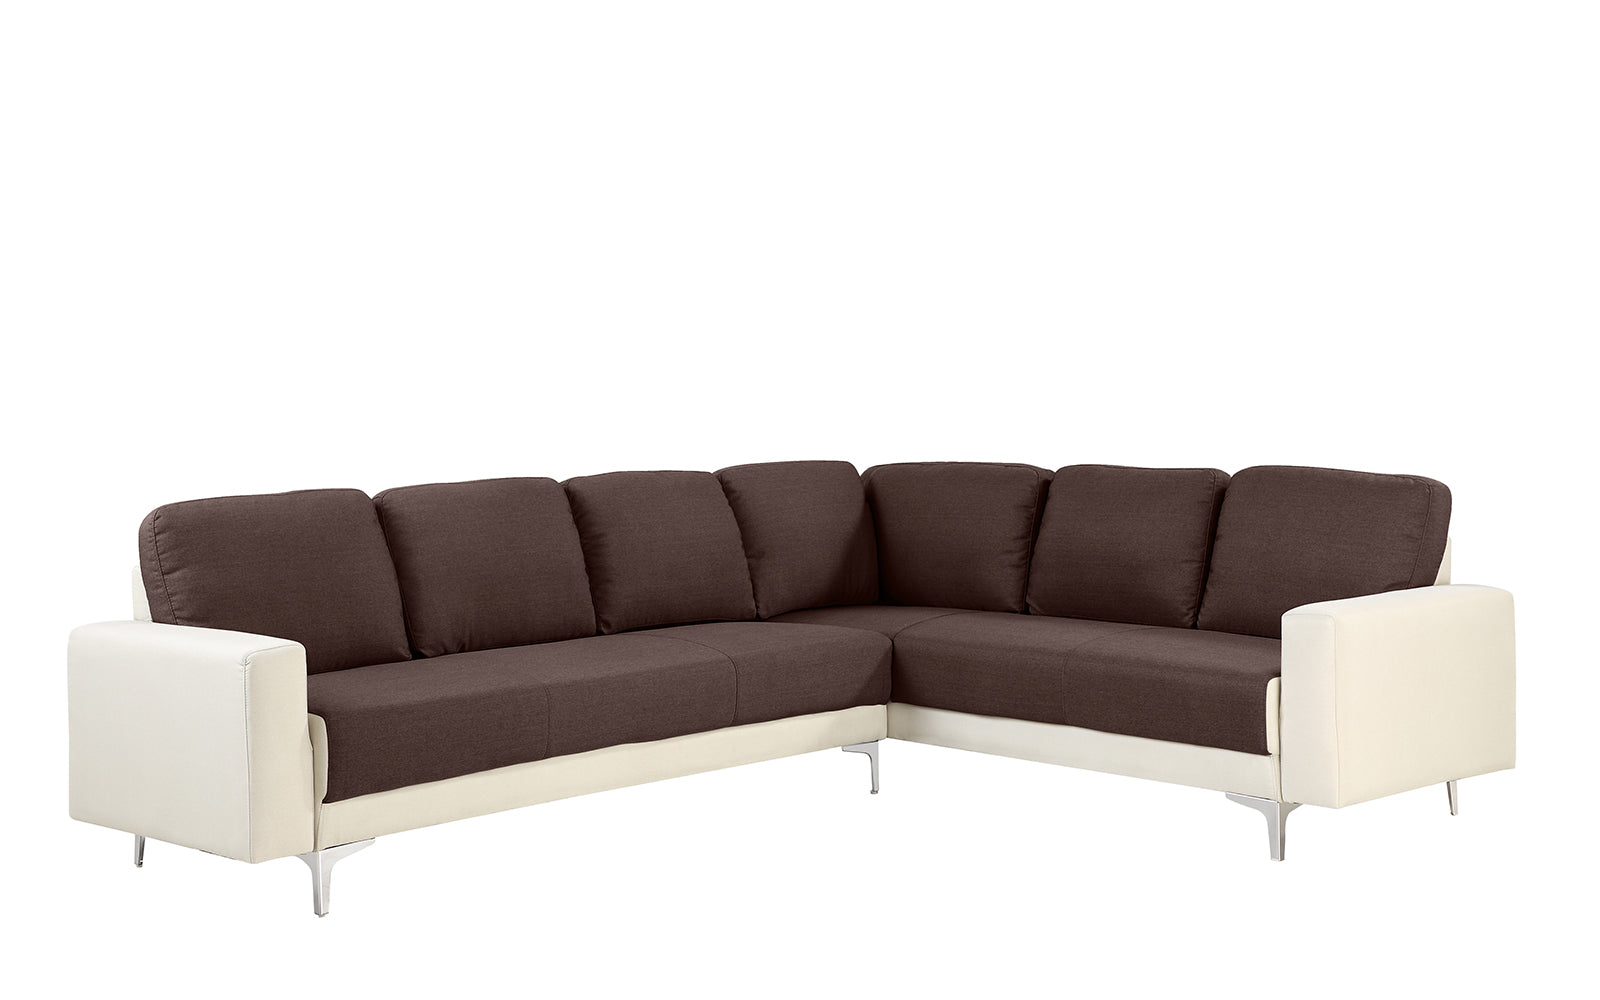 Linen Sectional Sofa Image